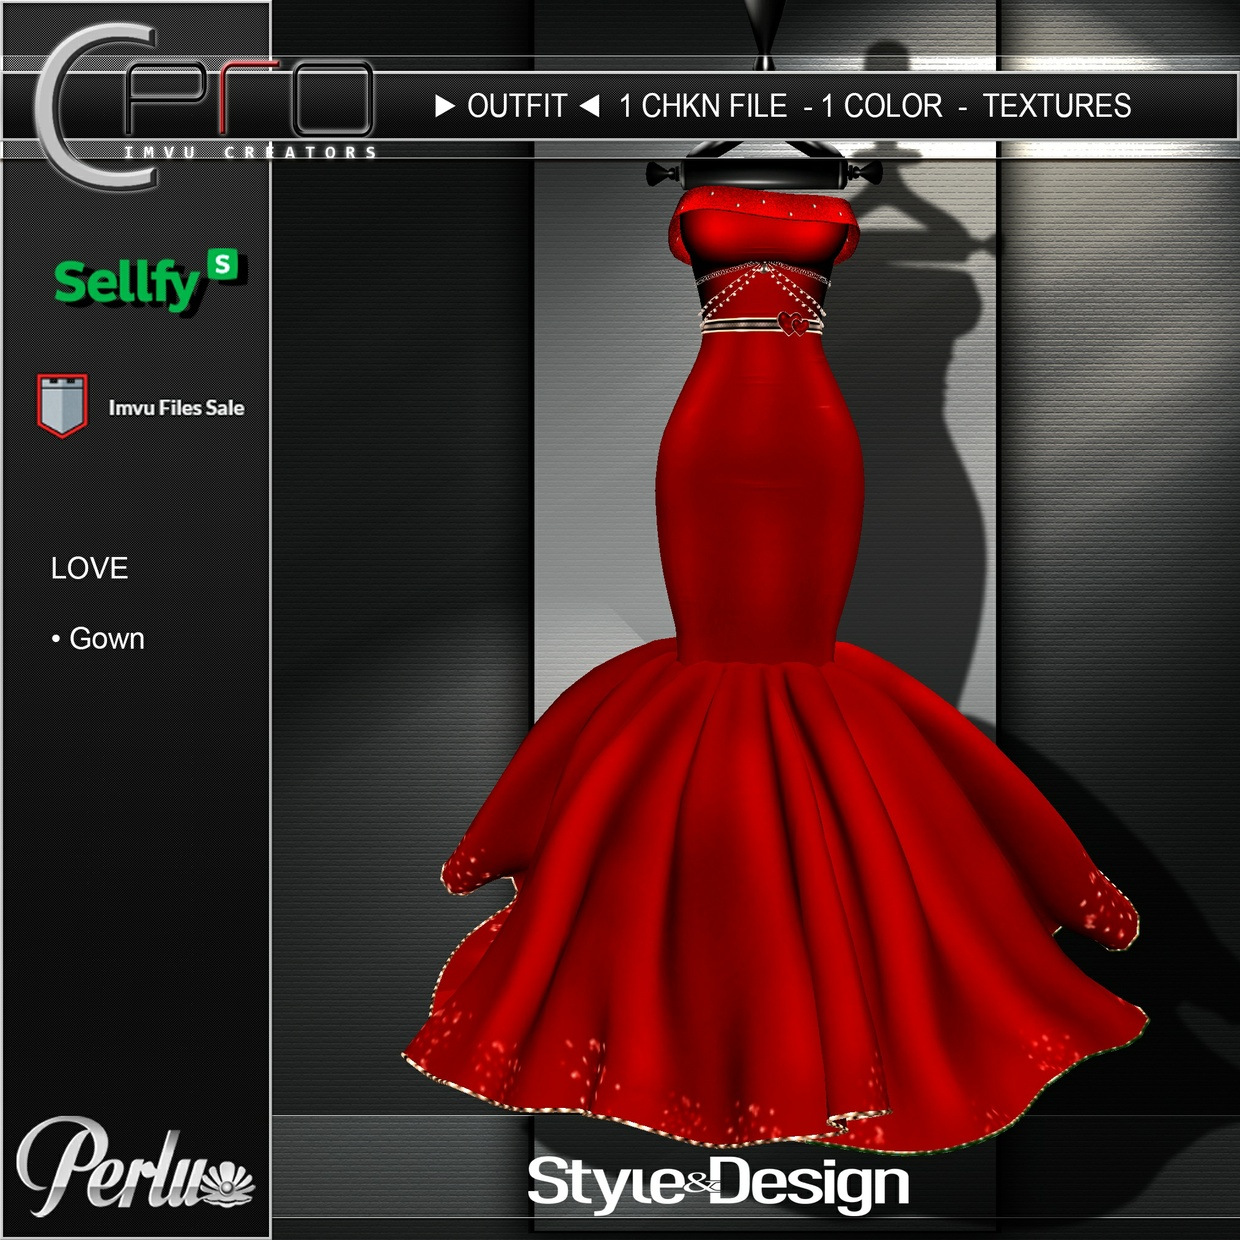 ►LOVE GOWN◄